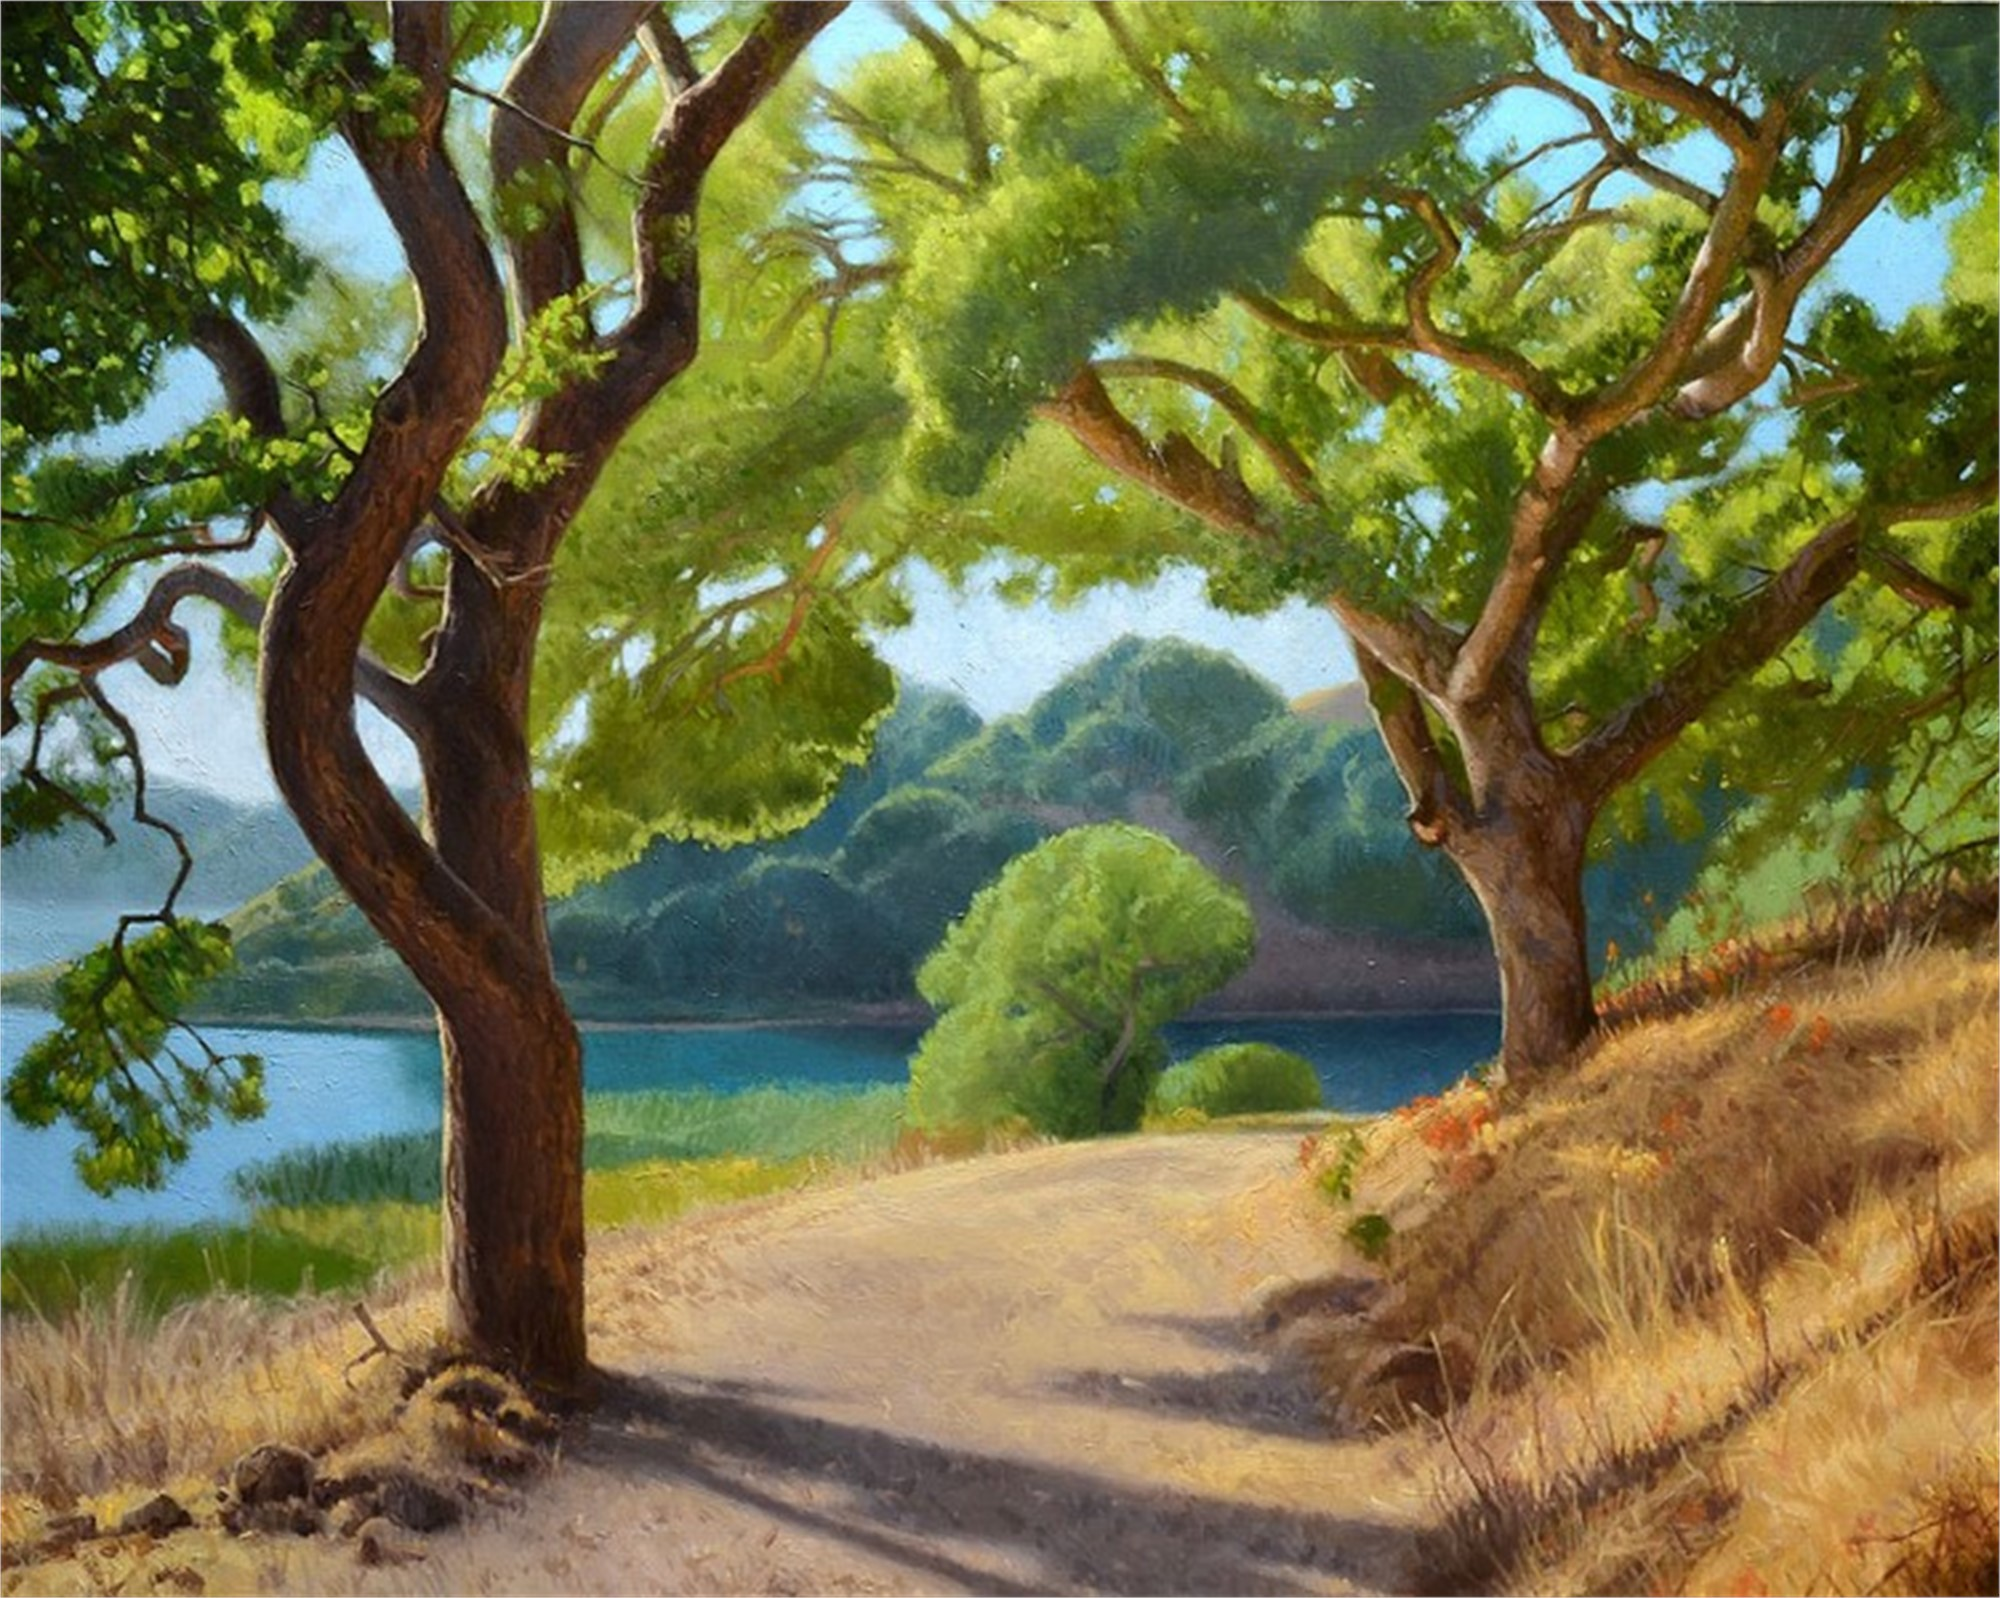 Oak Trees and Afternoon Light by Ocean Quigley